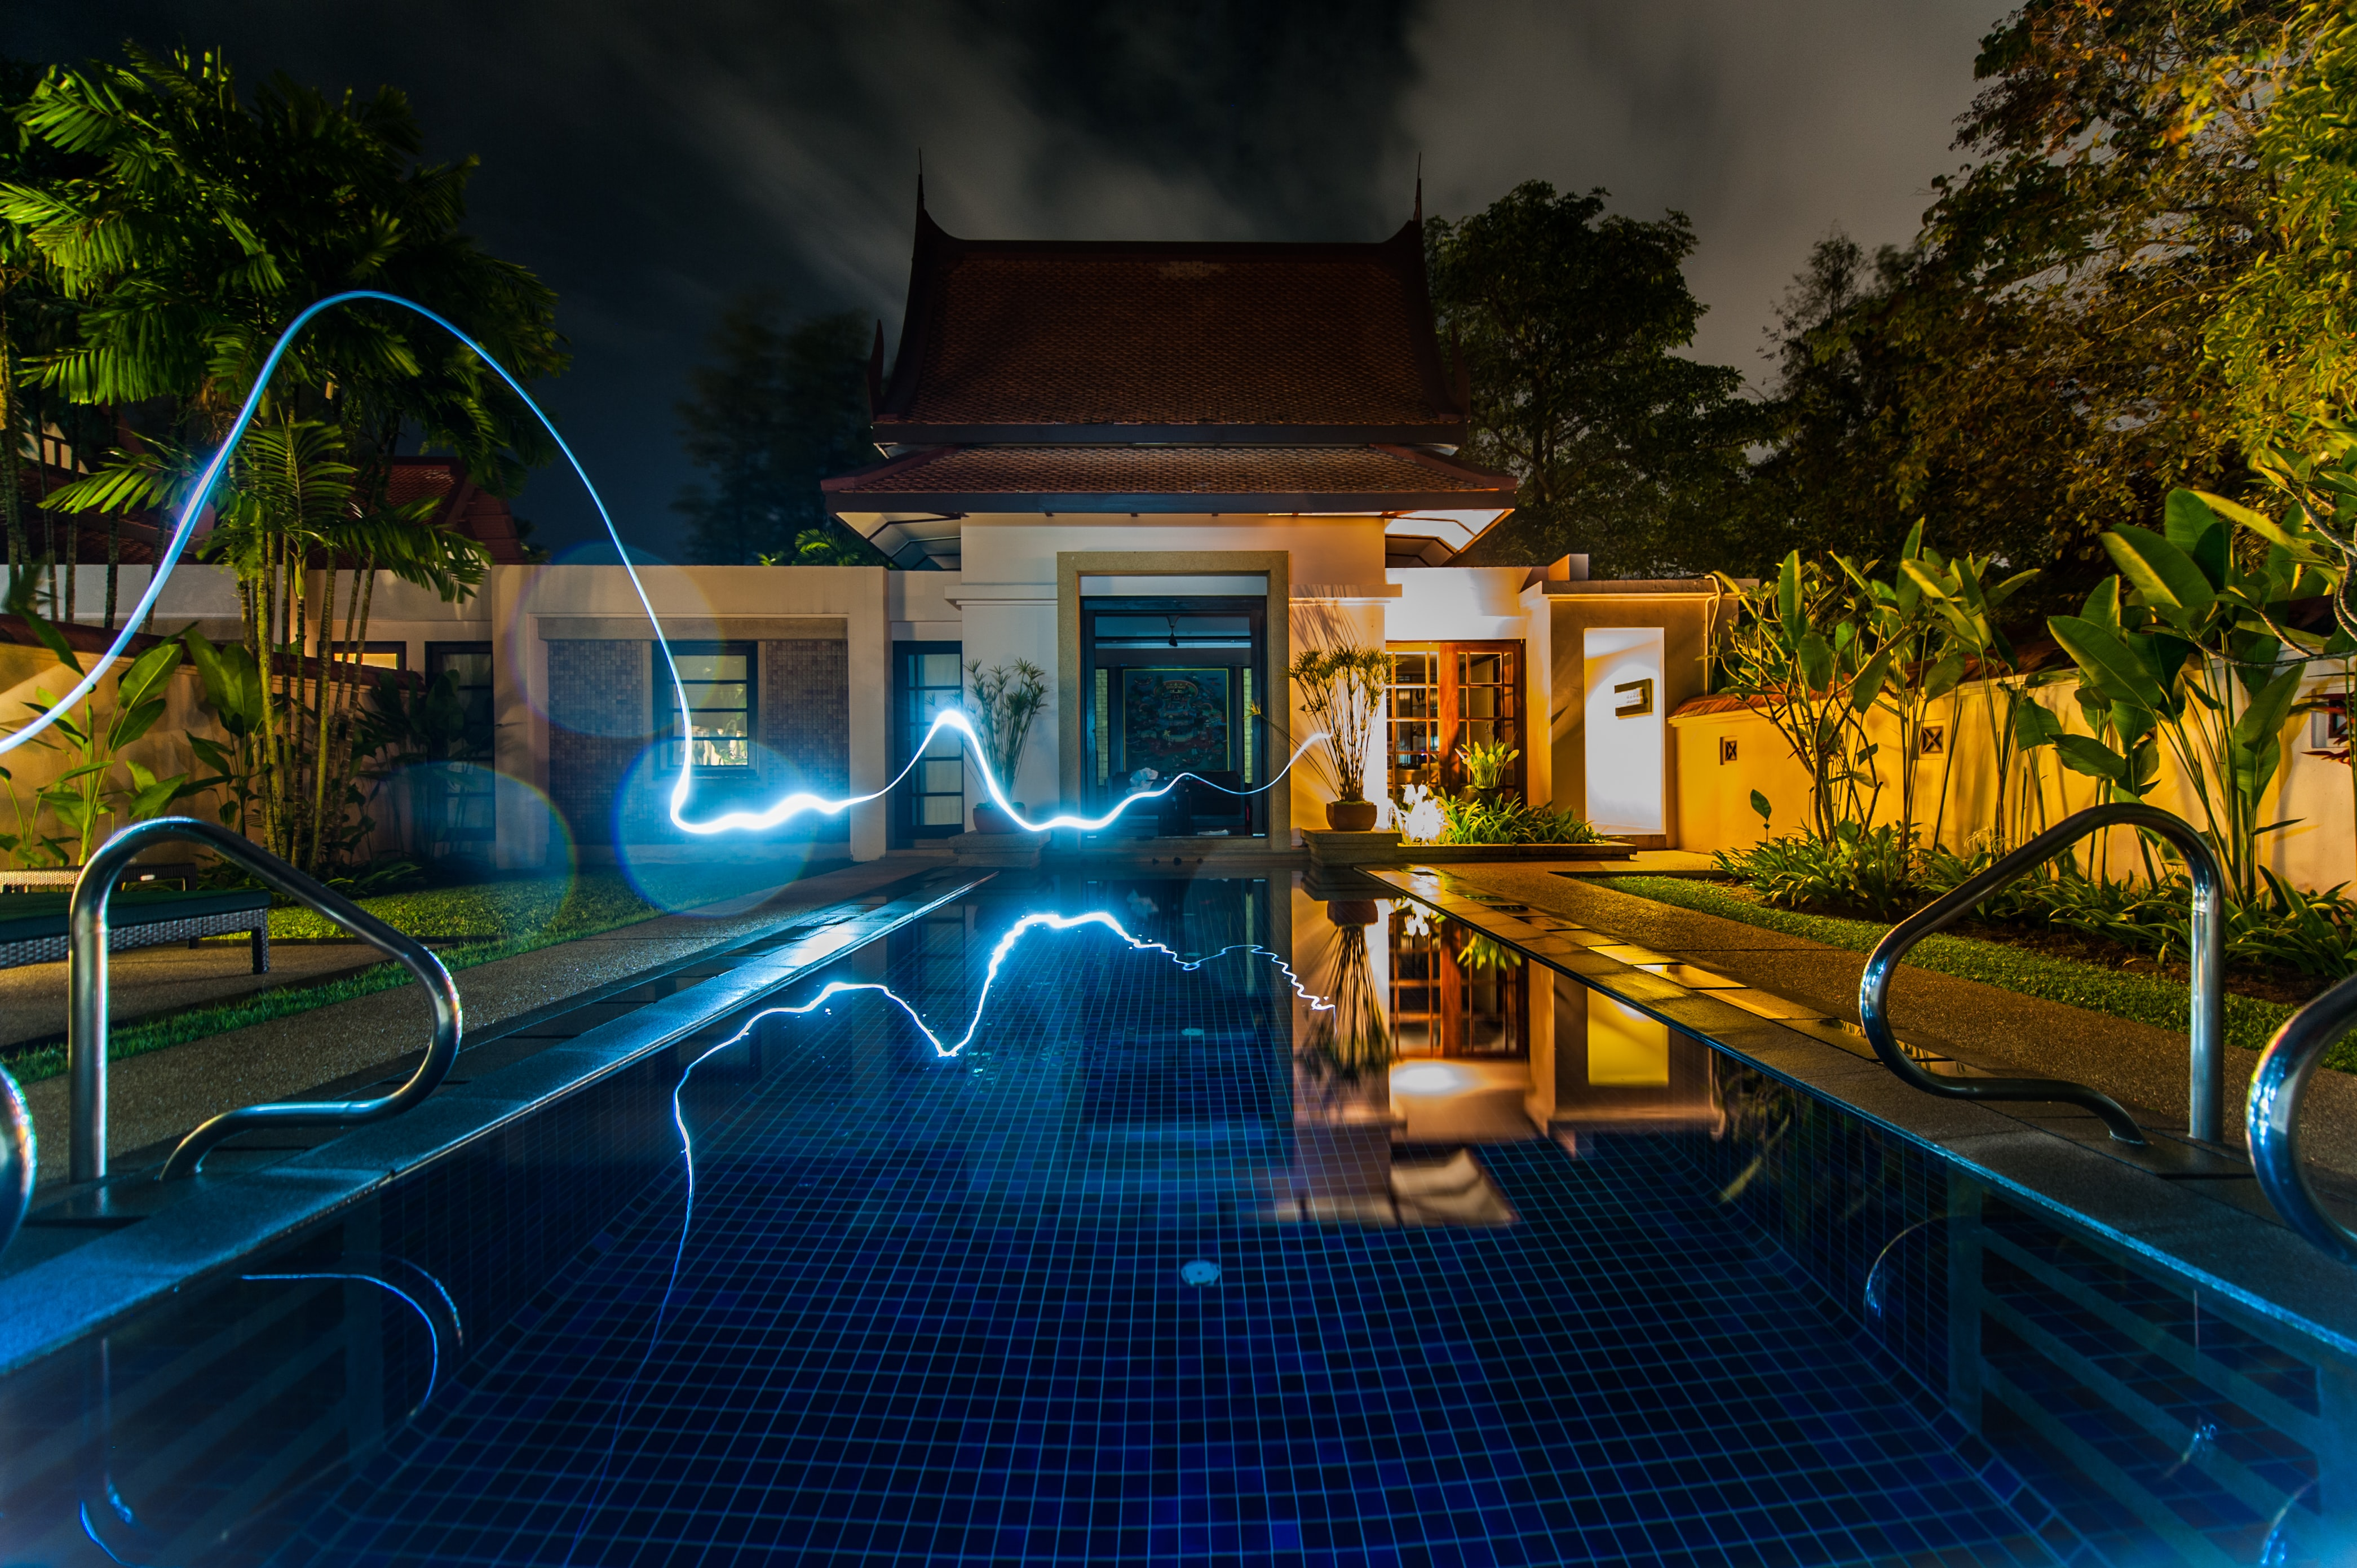 reflection of blue light crossing above pool near house during nighttime